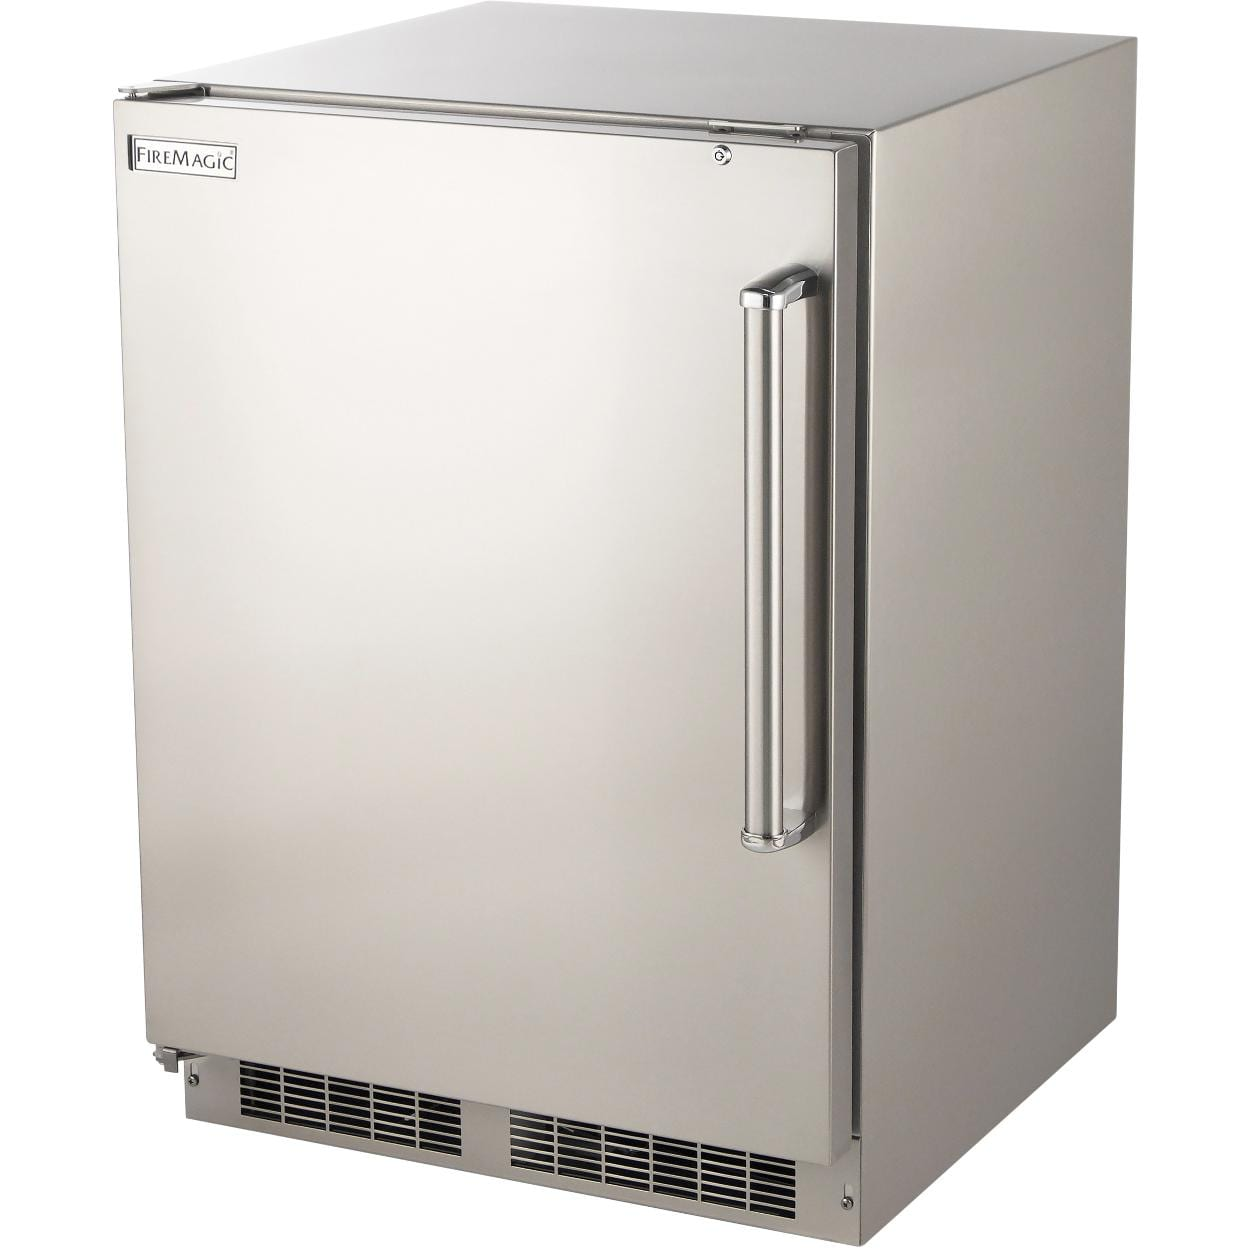 Fire Magic 24-Inch Outdoor Refrigerator